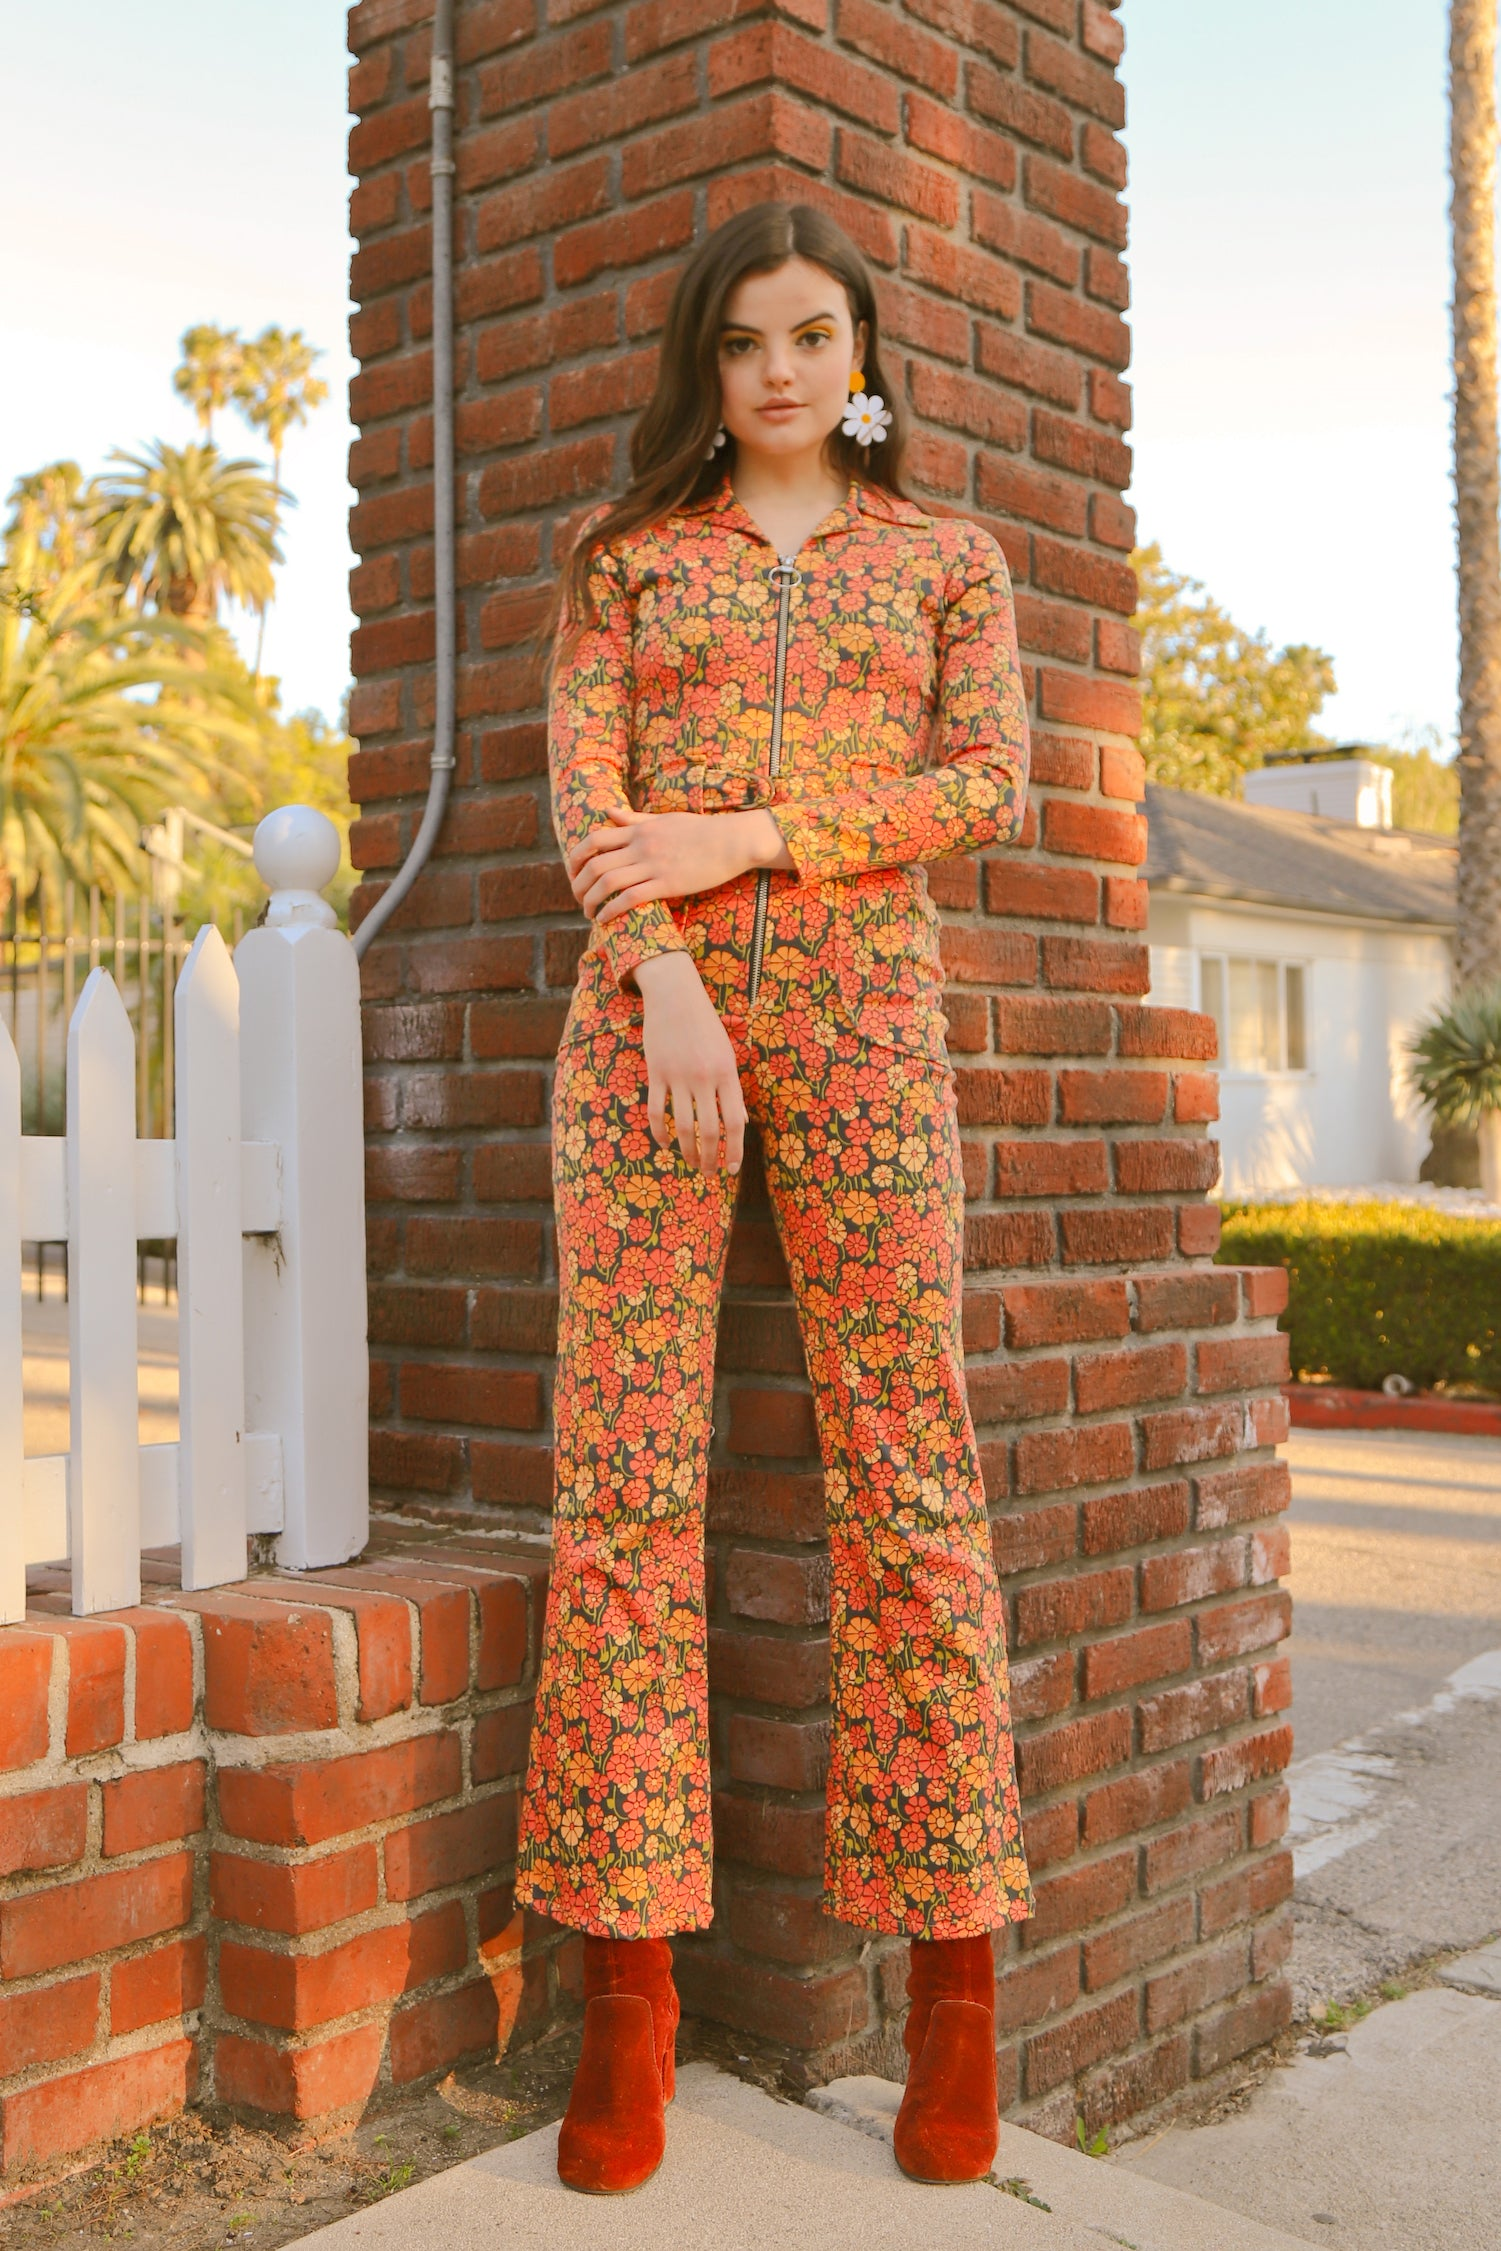 The Marigold Jumpsuit